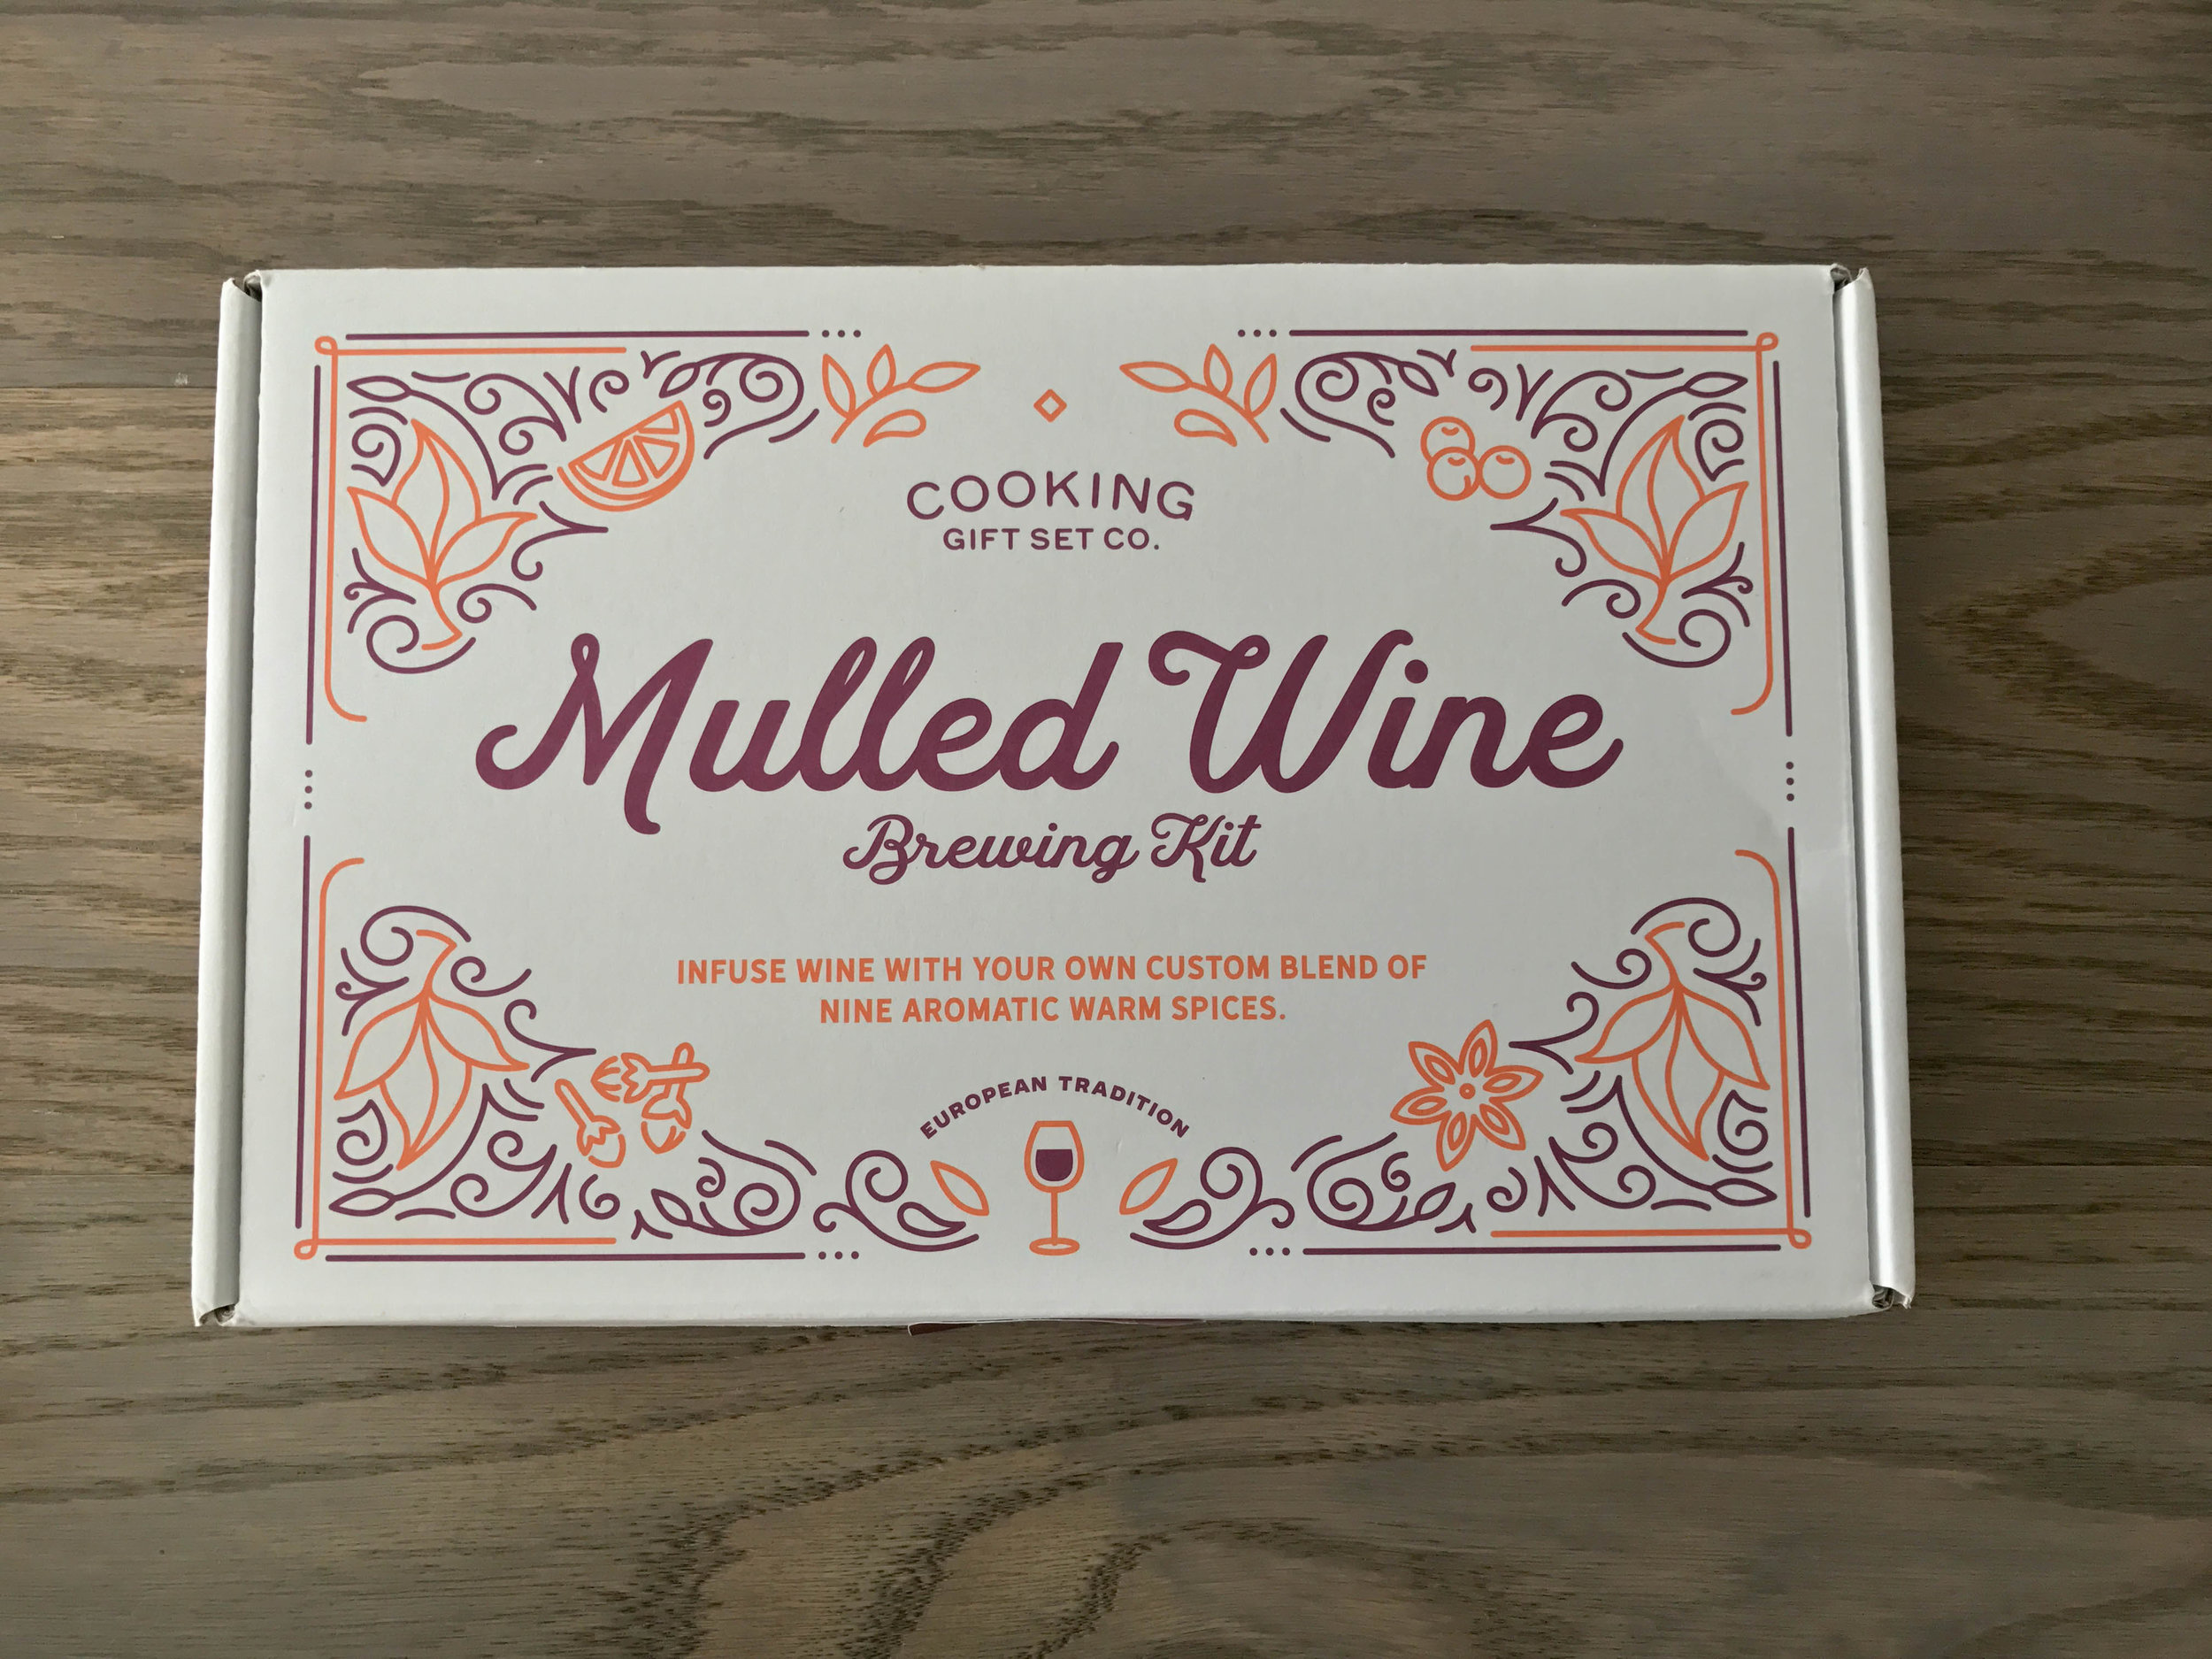 recipe for at home mulled wine, cooking gift set co., mulled wine brewing kit, wine, birthday treats,